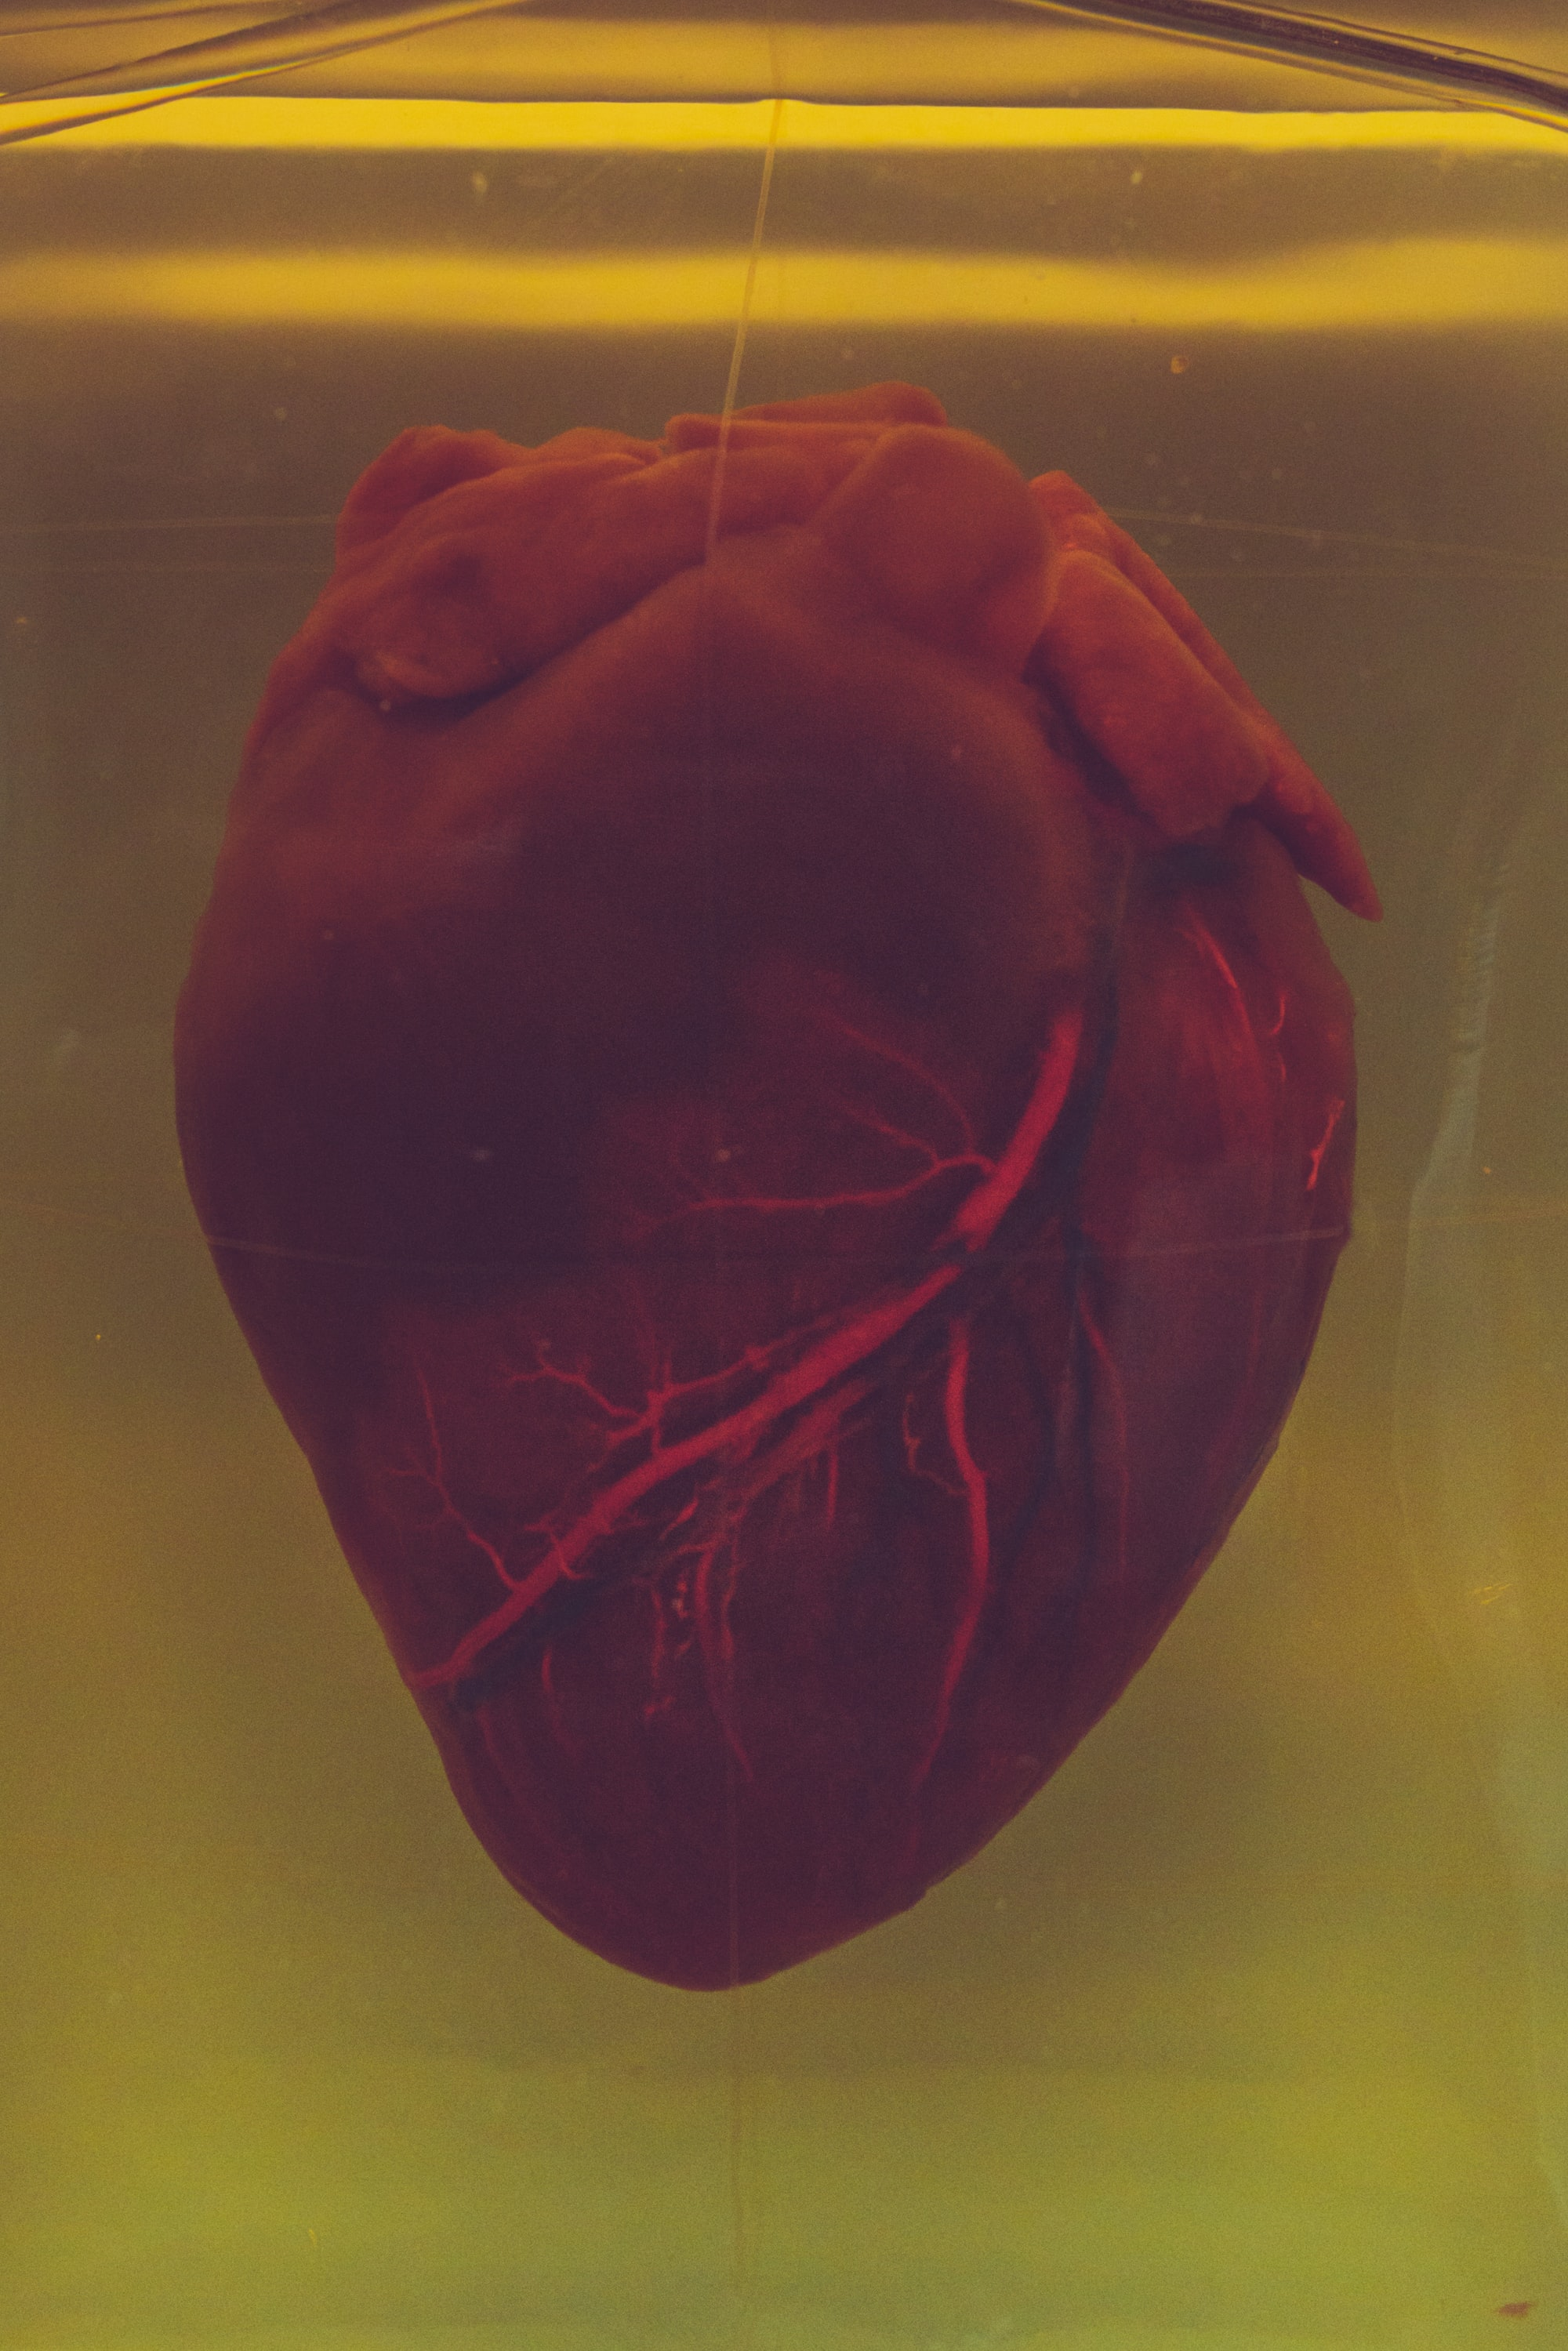 A real human heart inside a jar